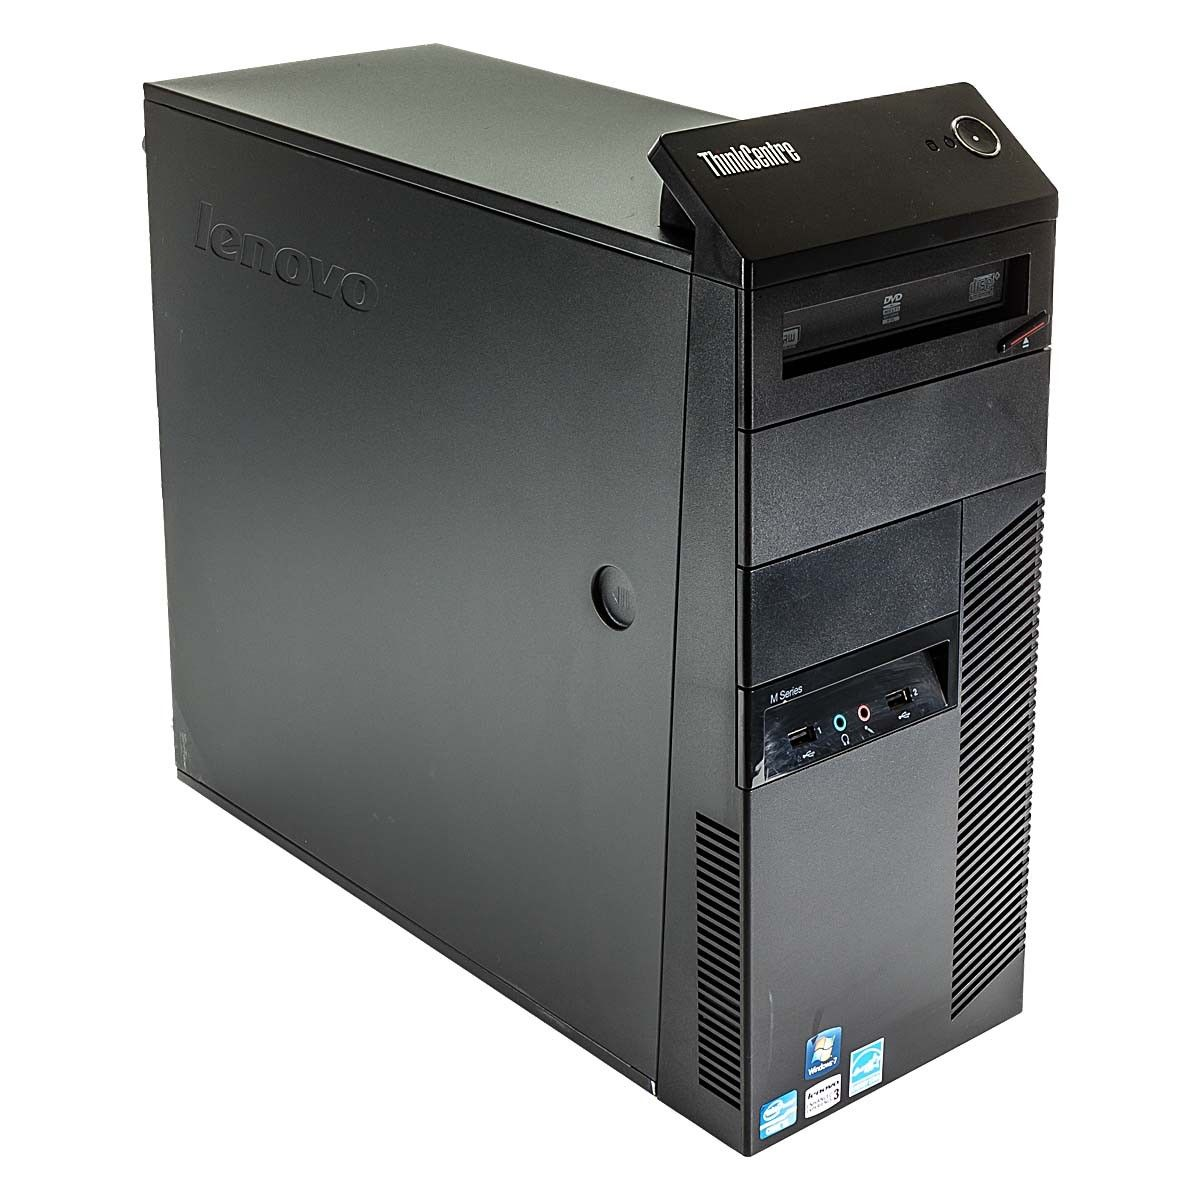 Art. Ordenador Lenovo ThinkCentre M81 Torre (Intel Core i5 2400 3.1GHz/4GB/500GB/DVDRW/W7P)